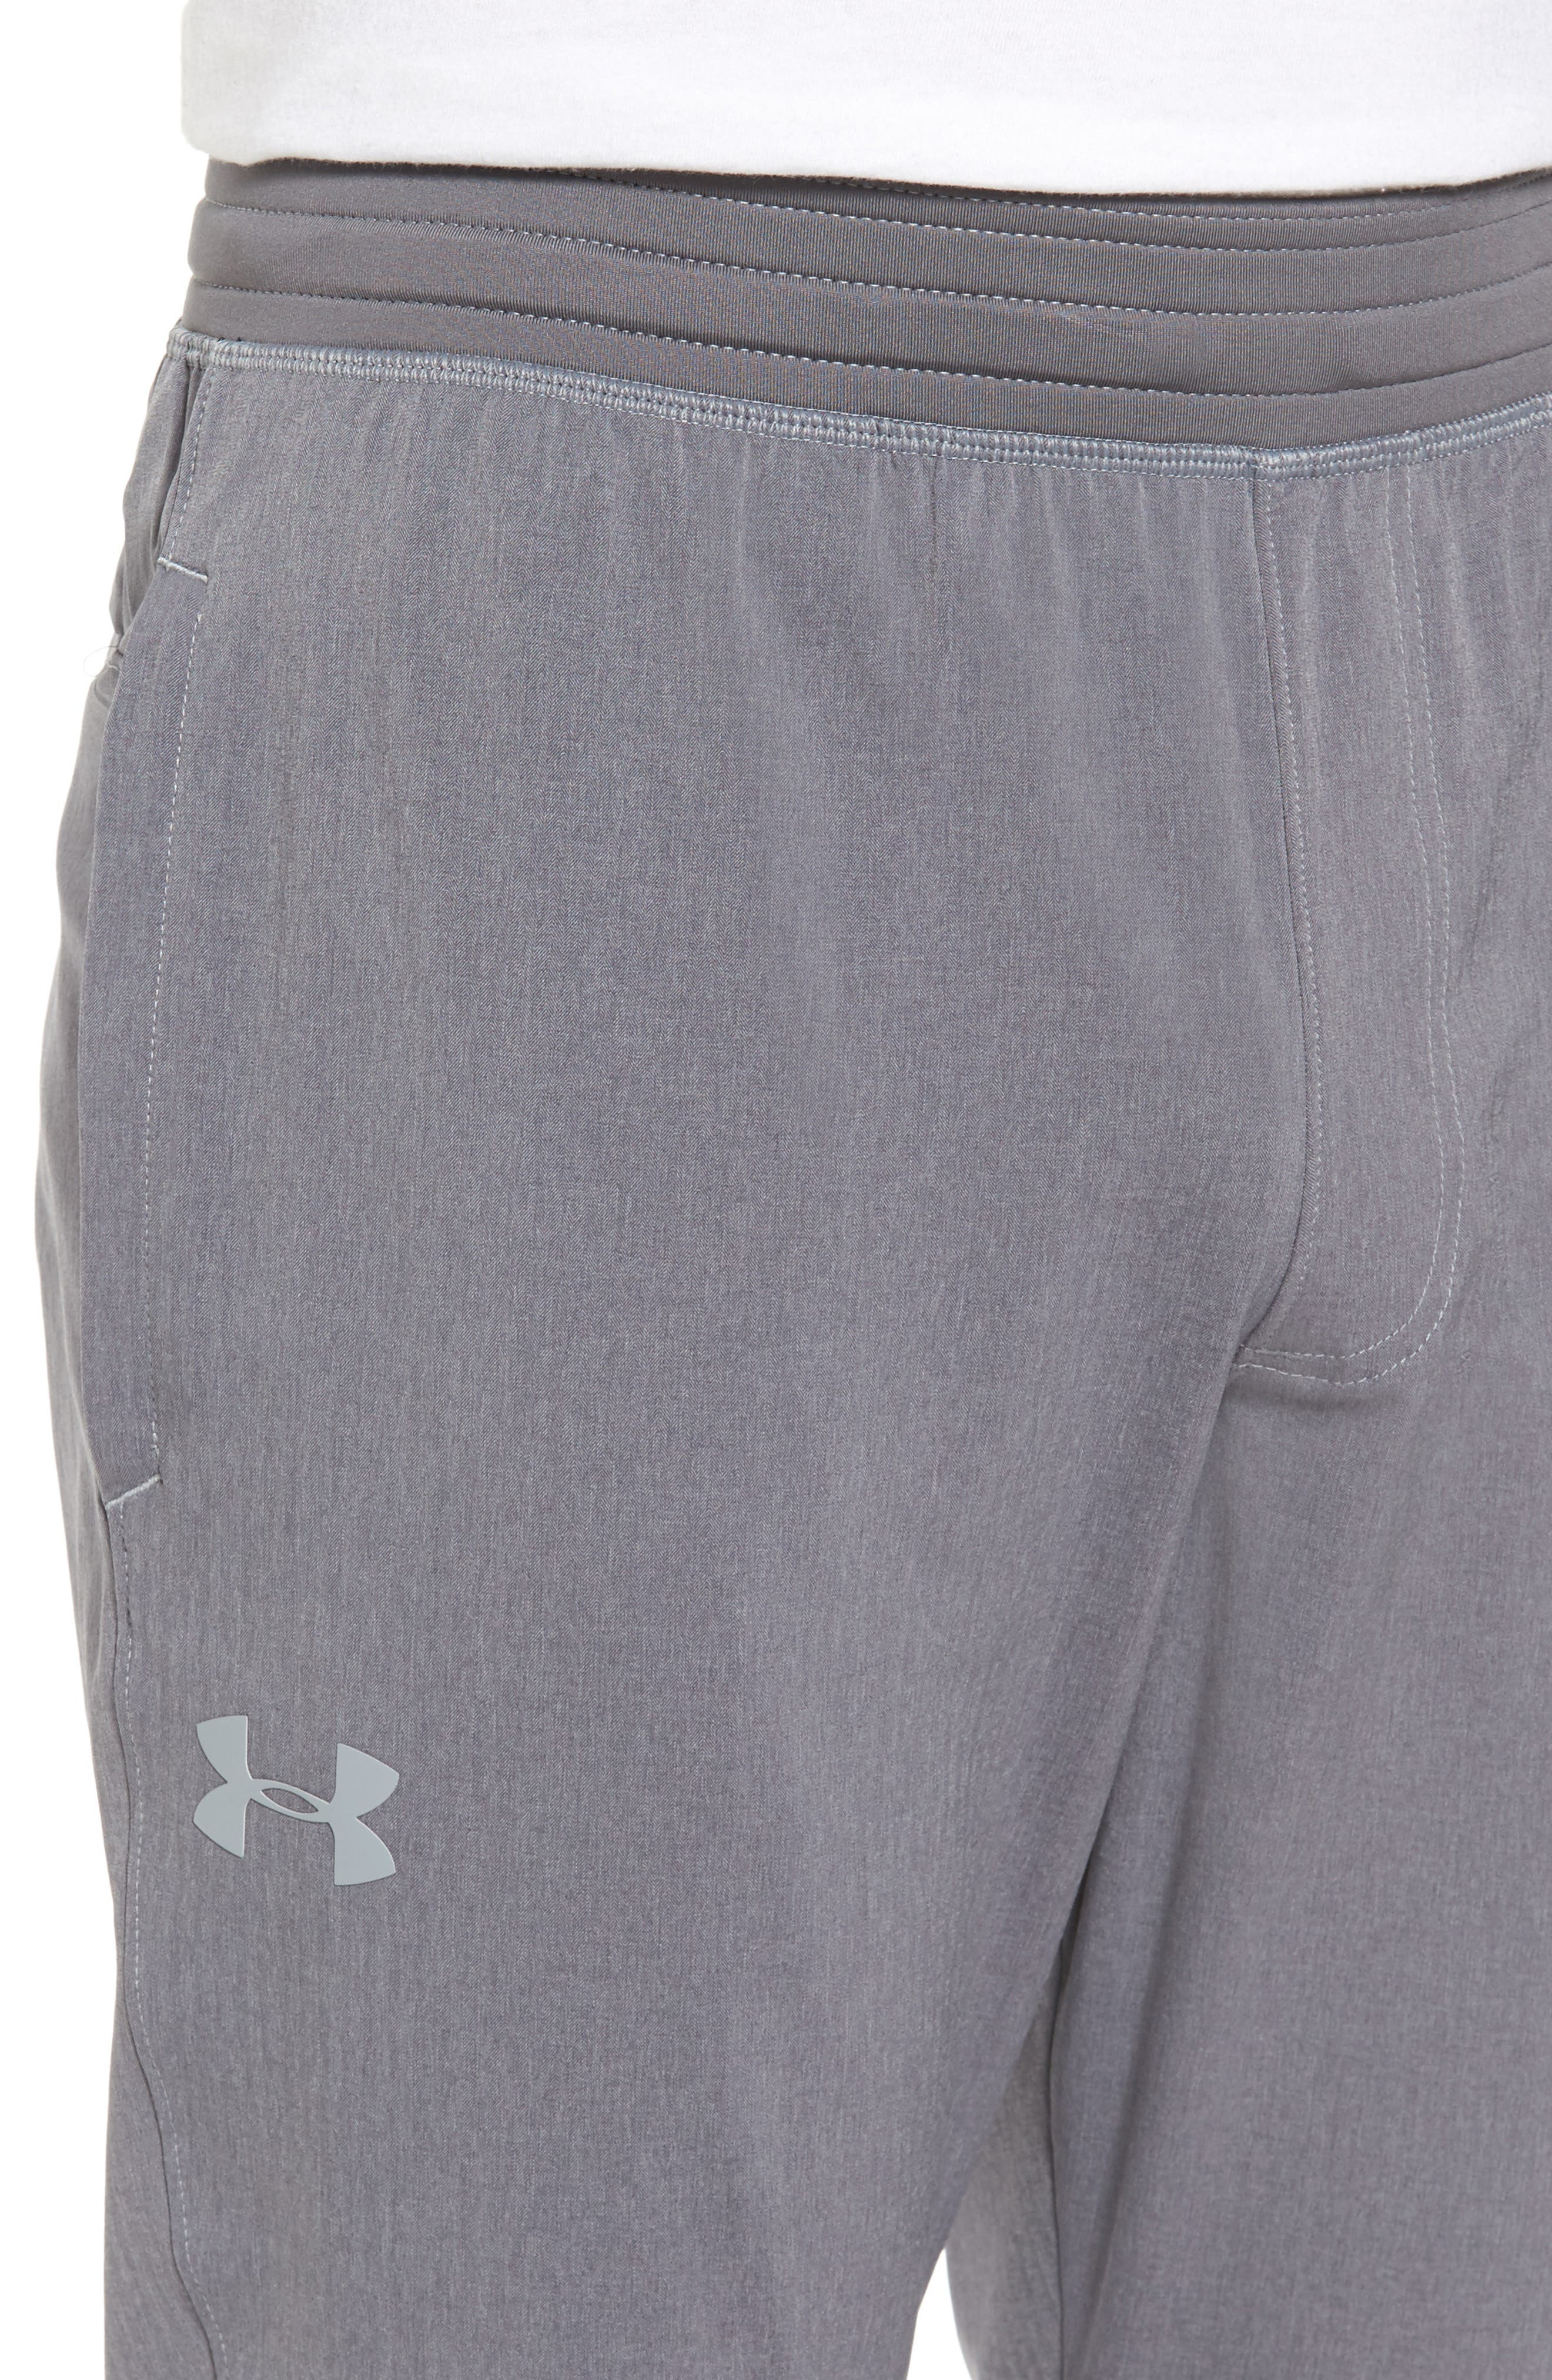 Alternate Image 4  - Under Armour Fitted Woven Training Pants